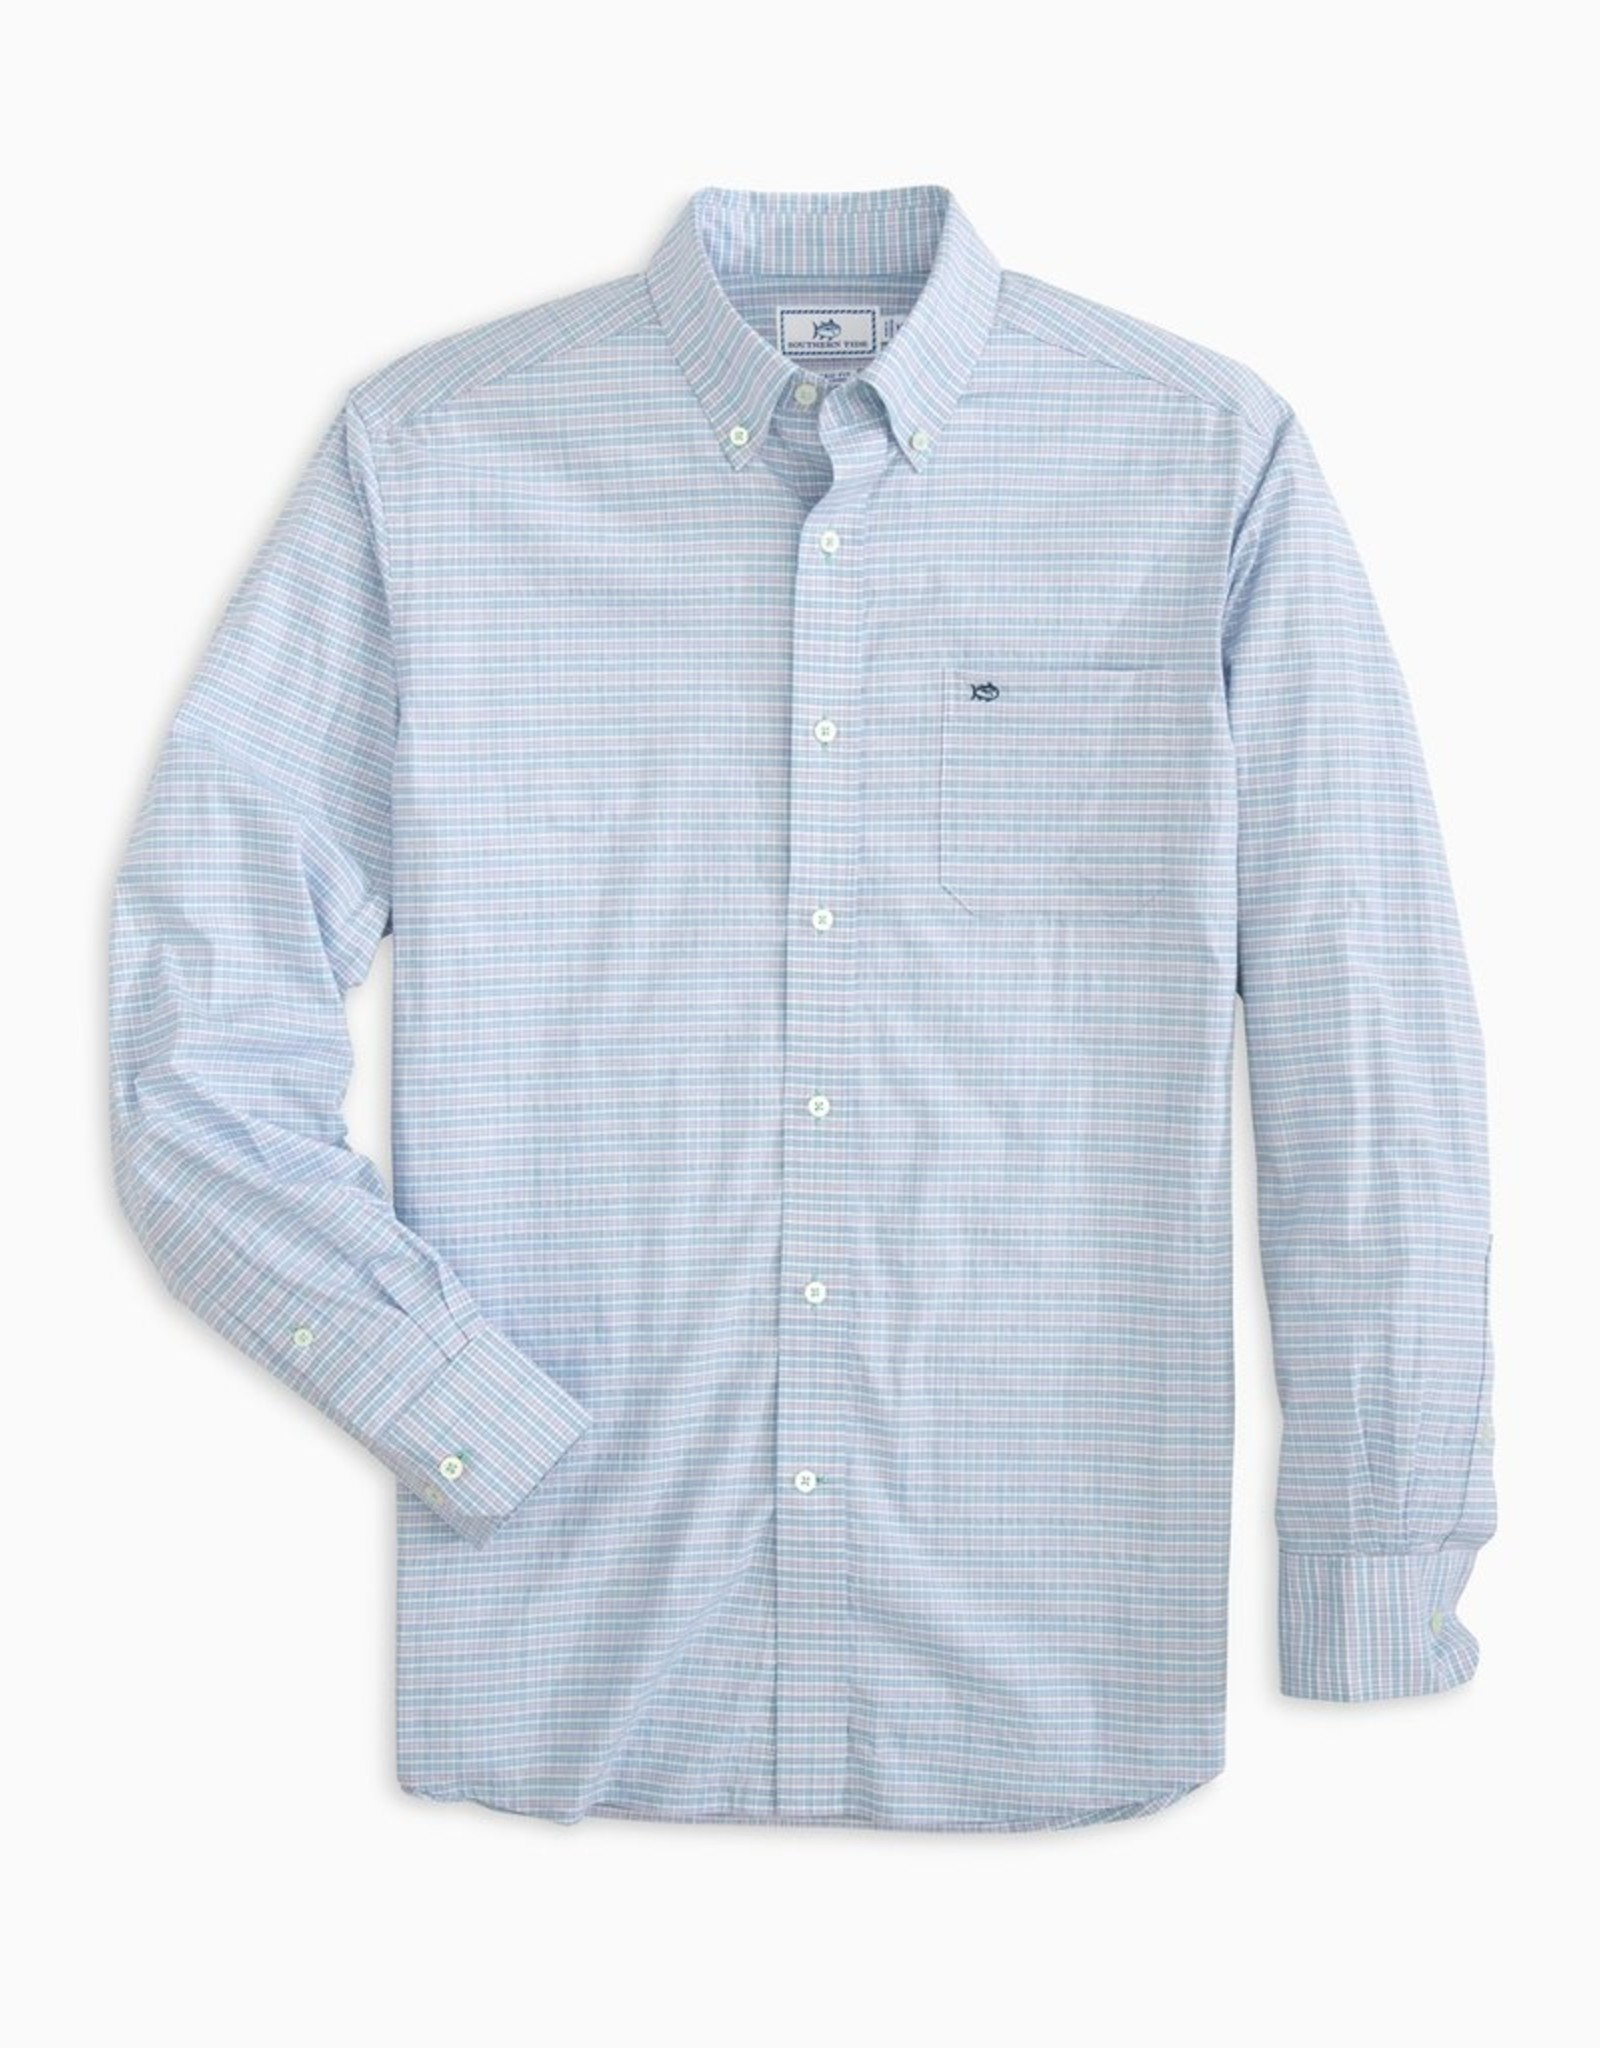 Southern Tide Guarded Gingham Sportshirt